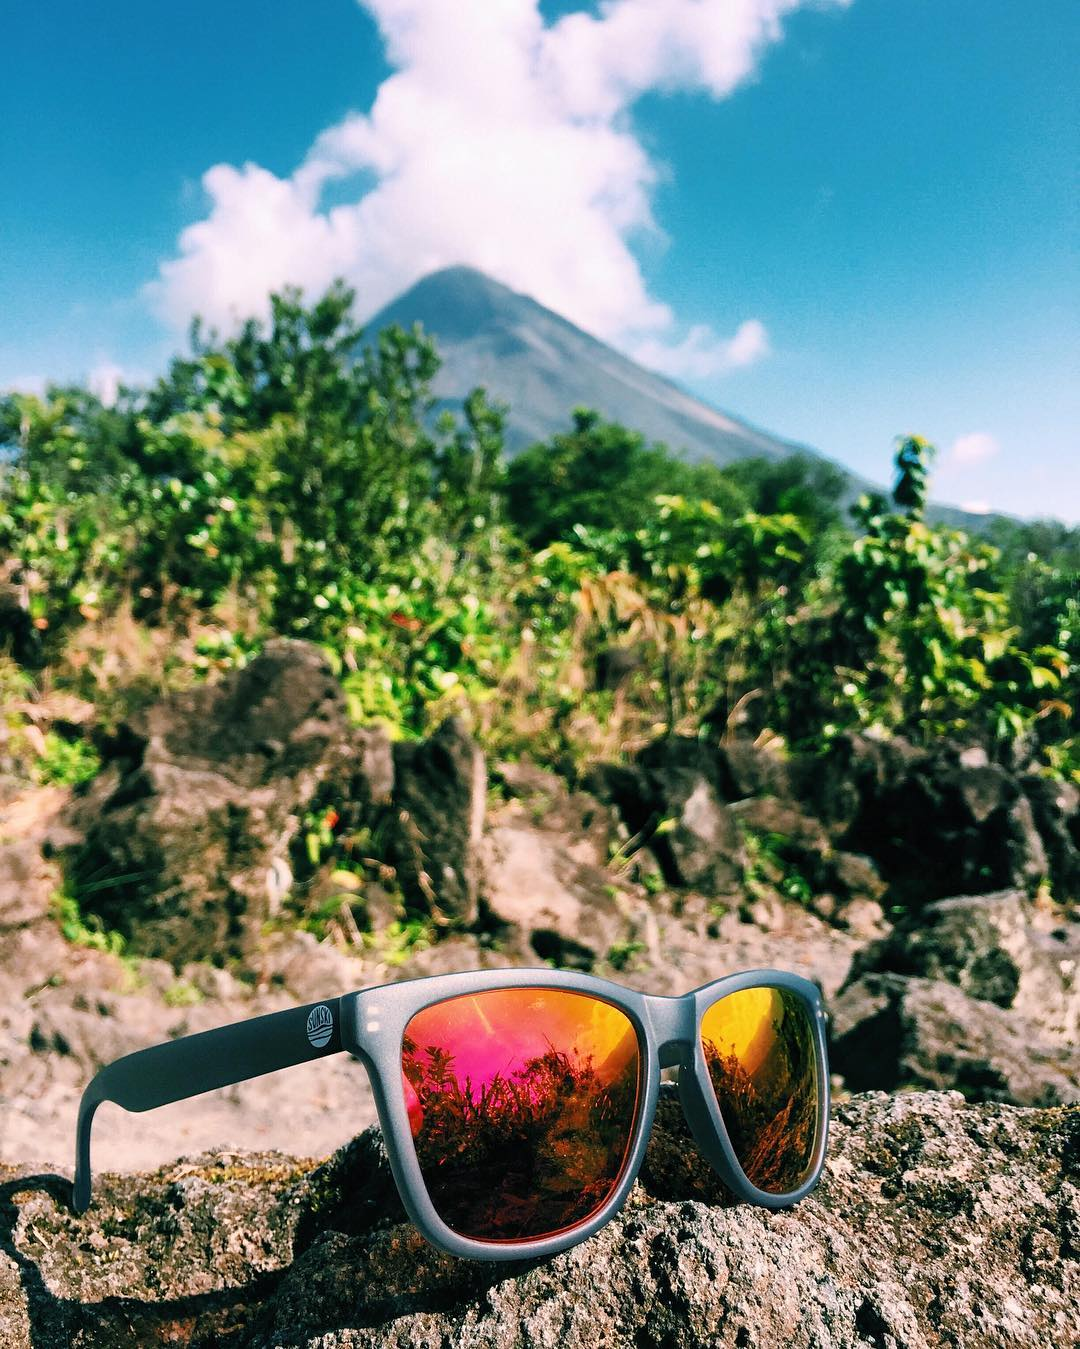 Shades with a side of volcano